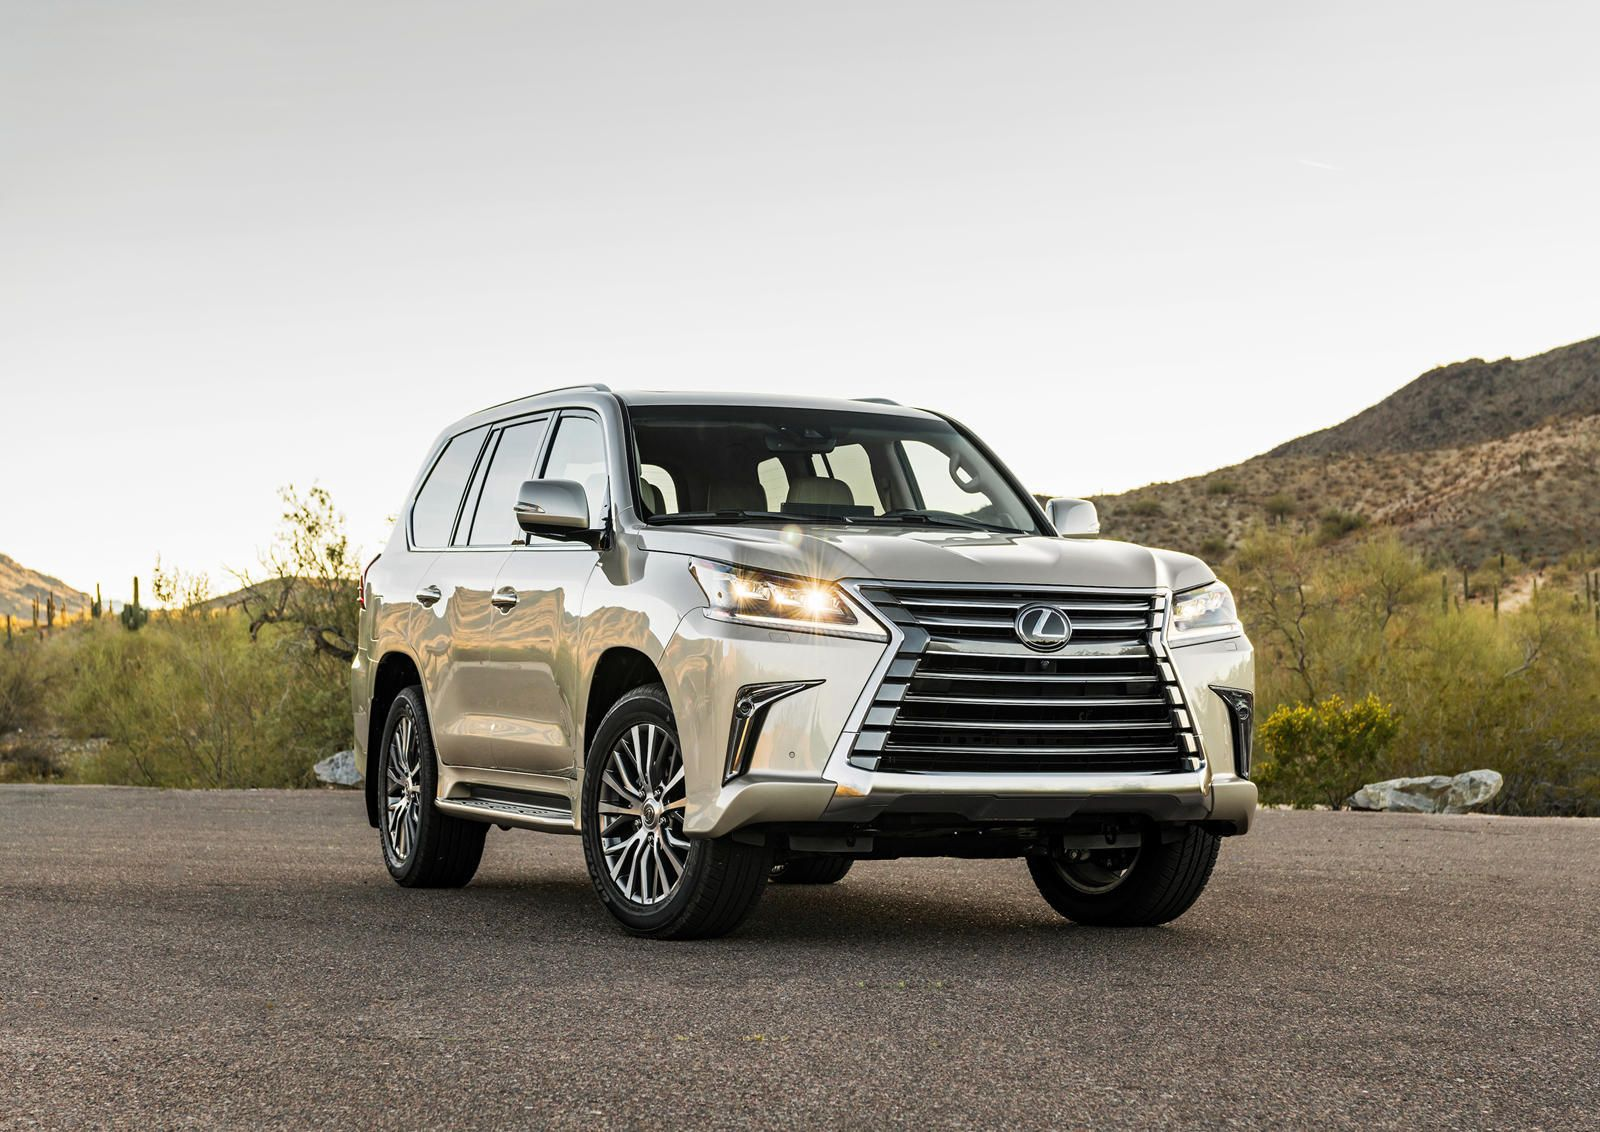 2020 Lexus Lx 570 Makes Toyota Land Cruiser Look Bland If The Lexus Lx 570 Isn T Striking Enough For You Check Out The New Sport Package Trong 2021 Xe Hơi